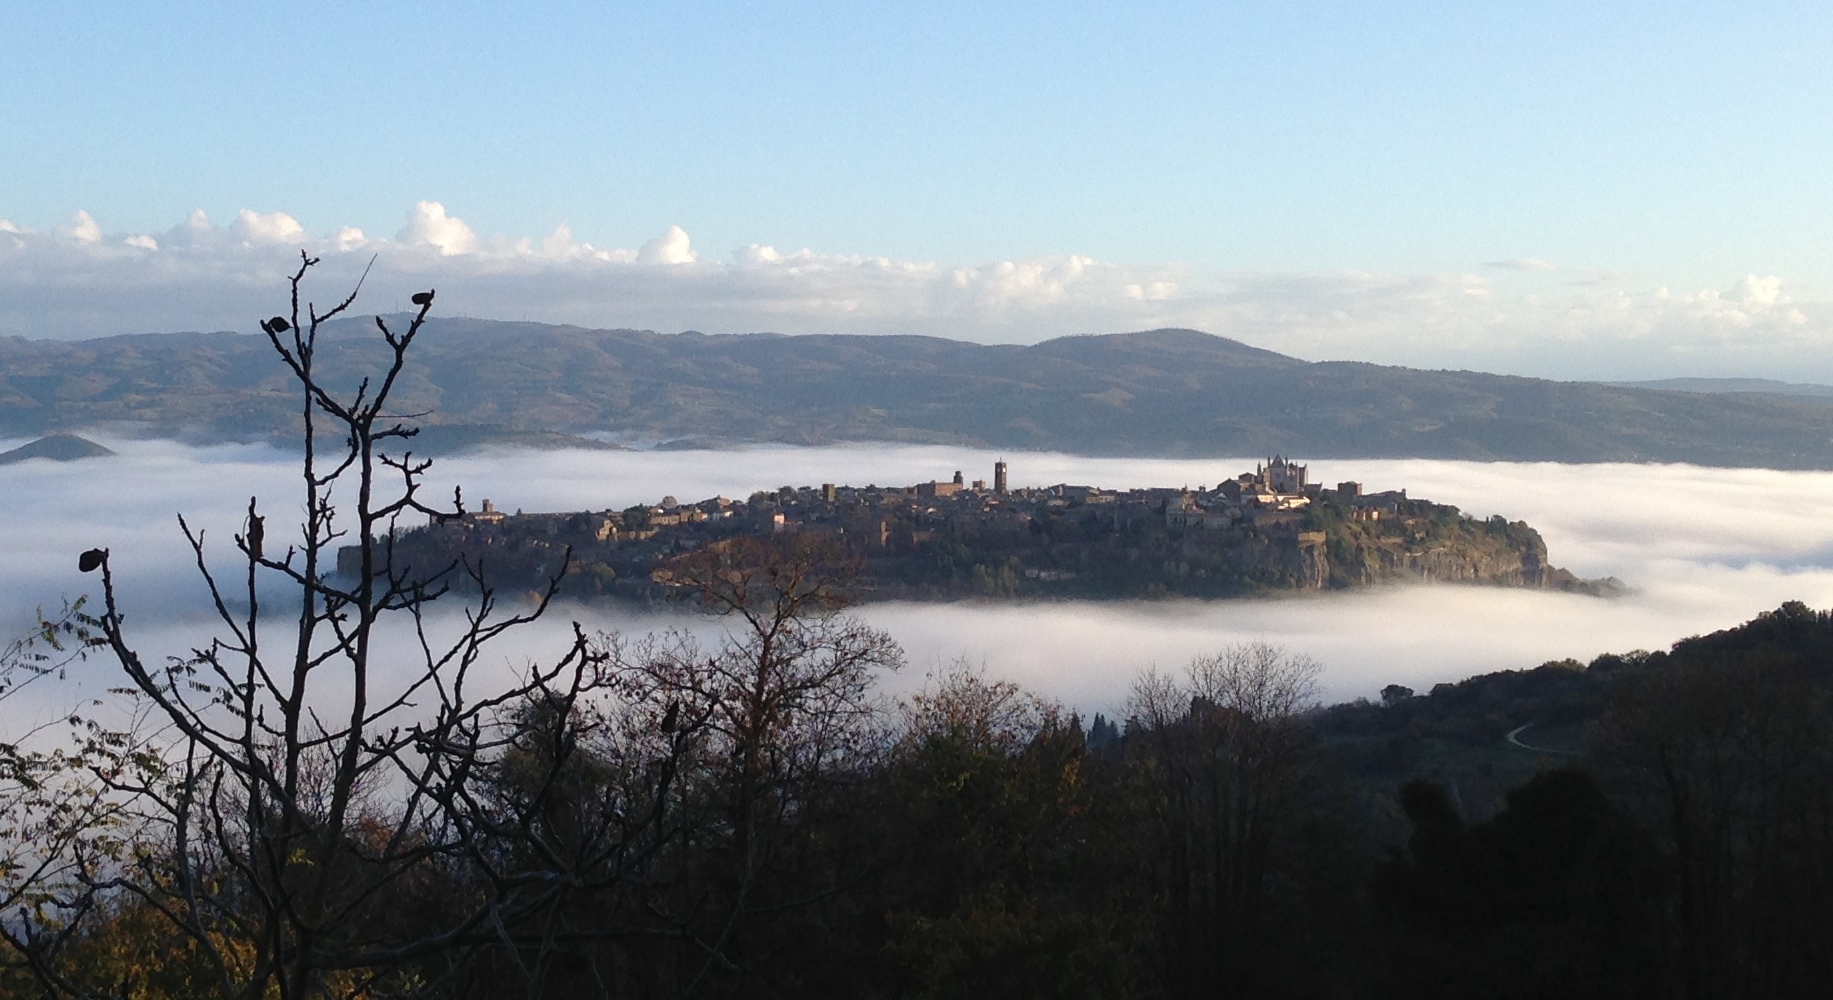 002 ORVIETO CLOUDS